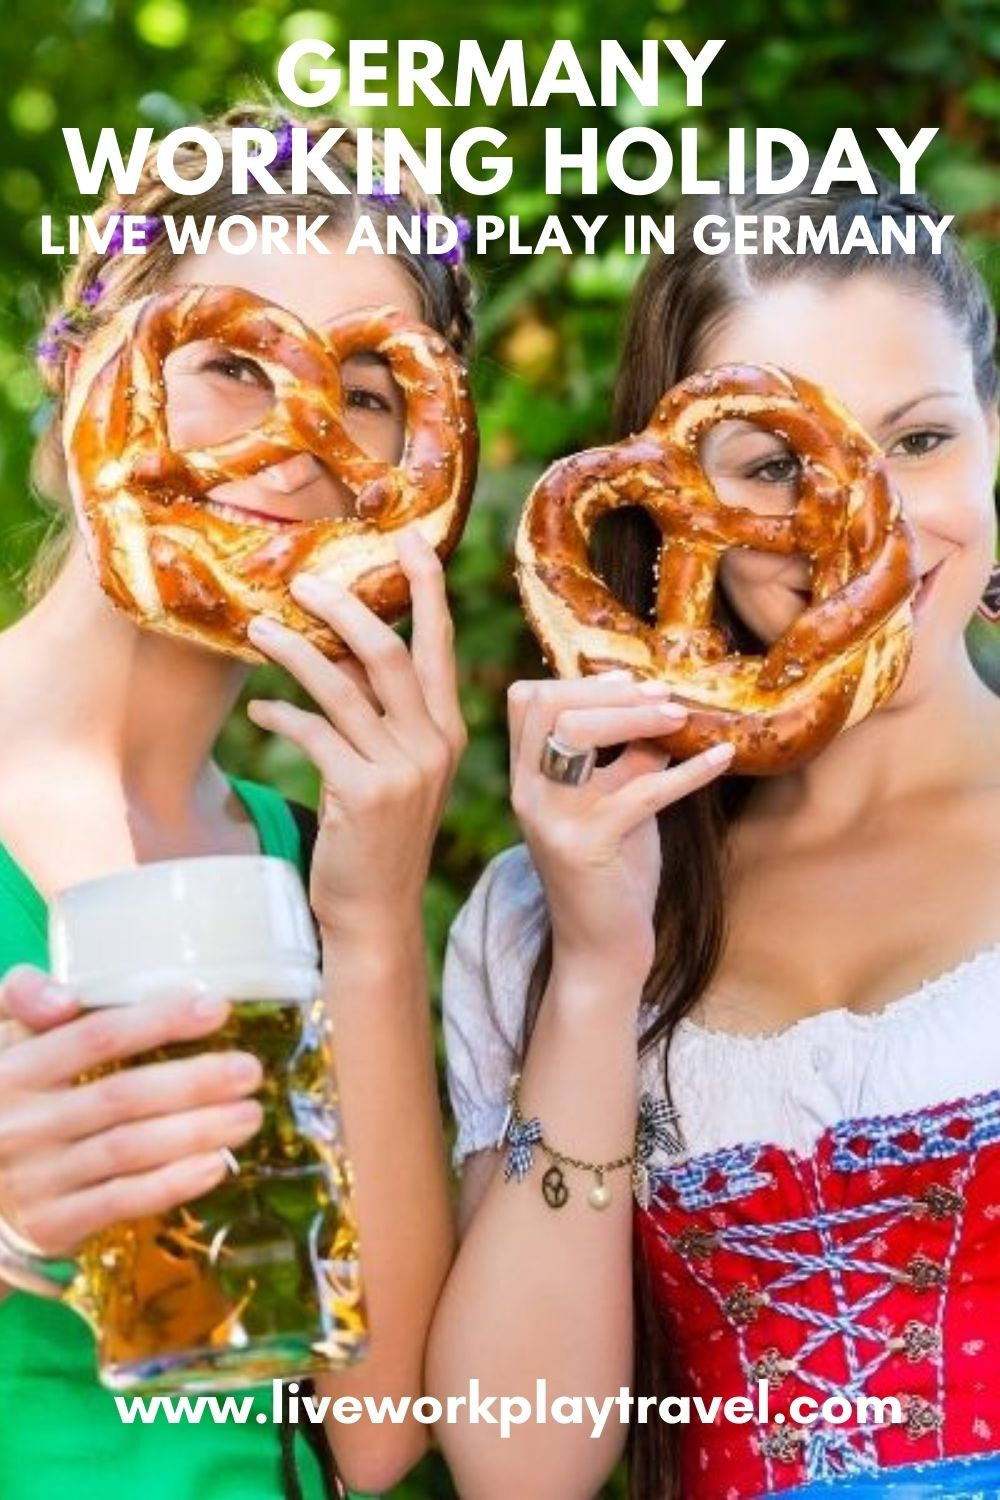 Two Girls Dressed In Traditional German Clothes Drinking Beer And Enjoying A Pretzel On Their Germany Working Holiday.